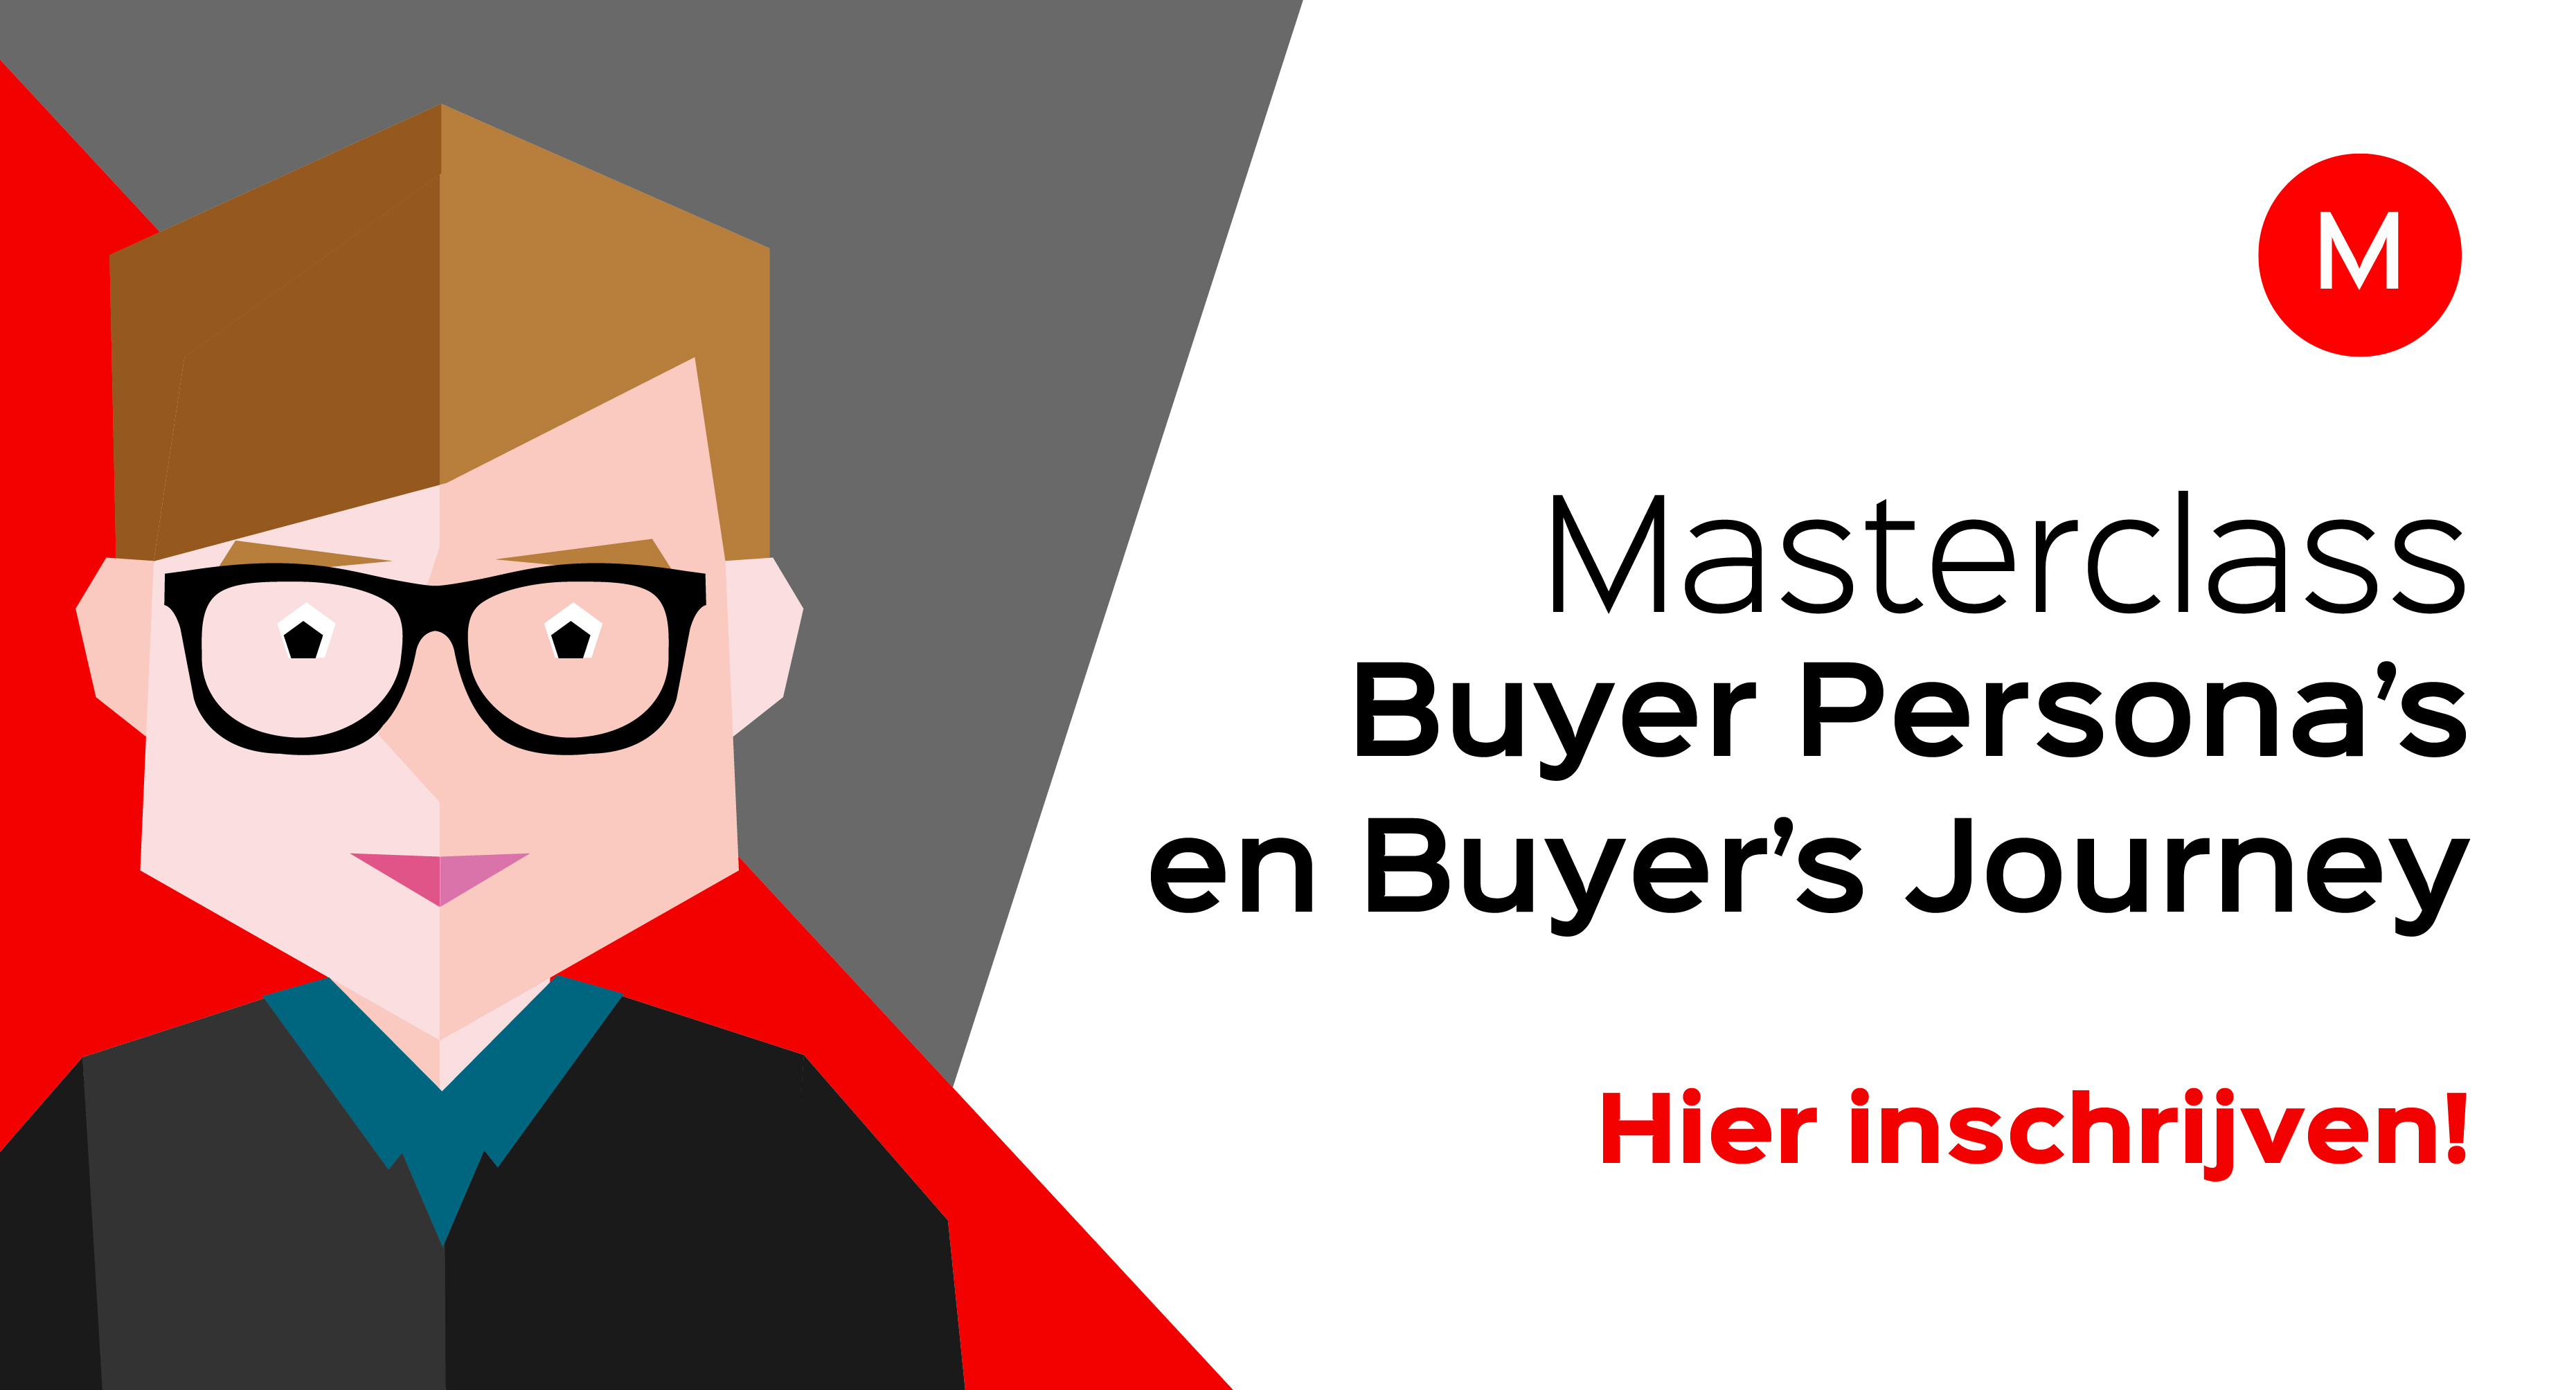 Masterclass Persona's en Buyer's Journey